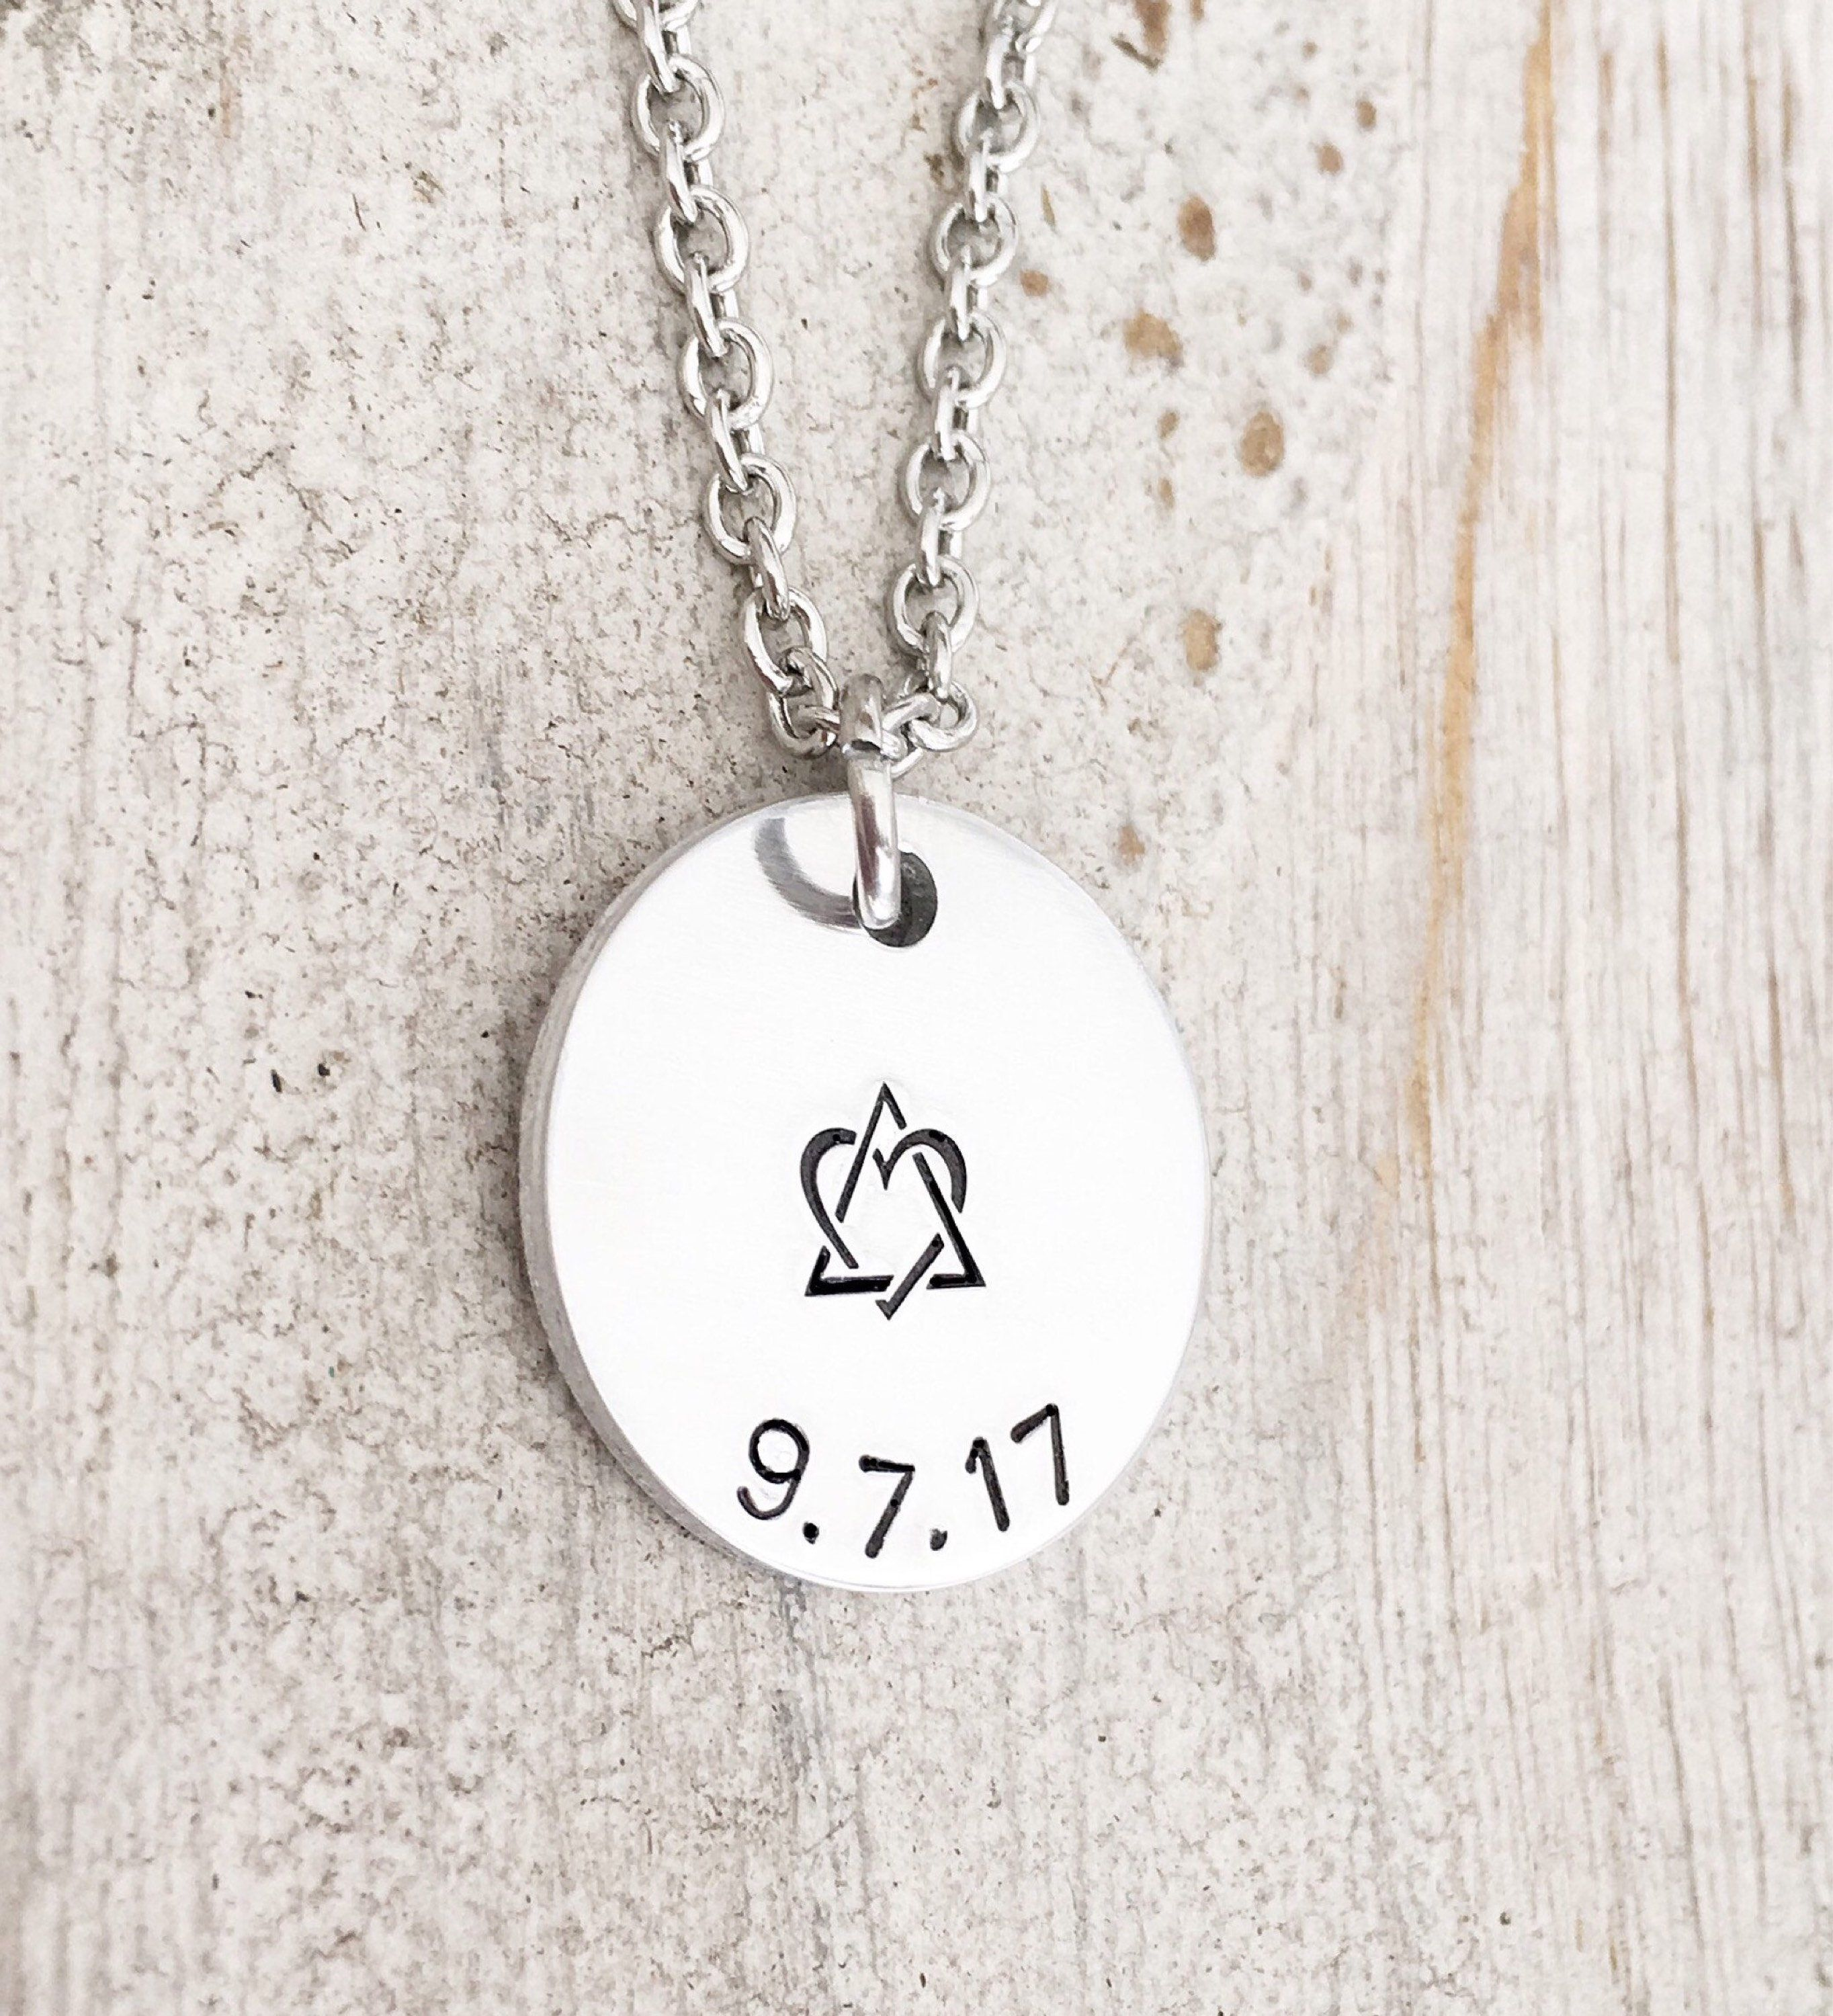 Adoption jewelry adoptive mom necklace gift for adoption adoption jewelry adoptive mom necklace gift for adoption birthmom foster parent adoption symbol buycottarizona Image collections